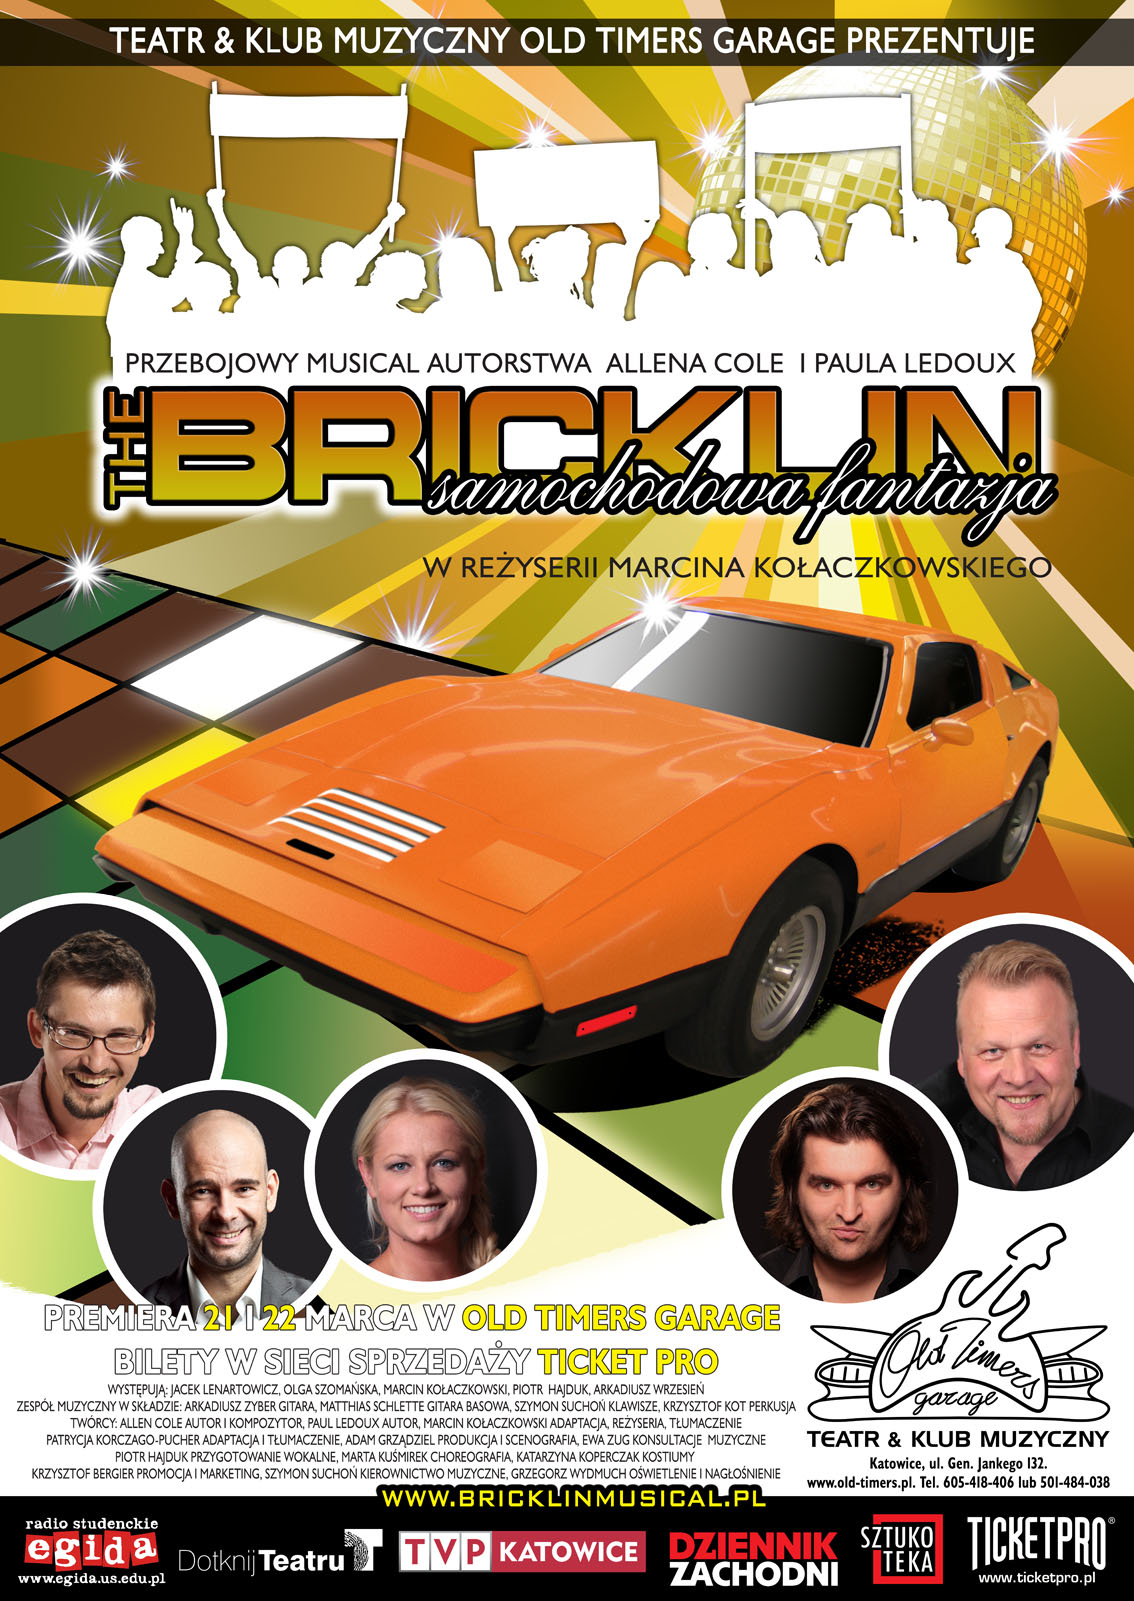 The Bricklin Musical w Old Timers Garage